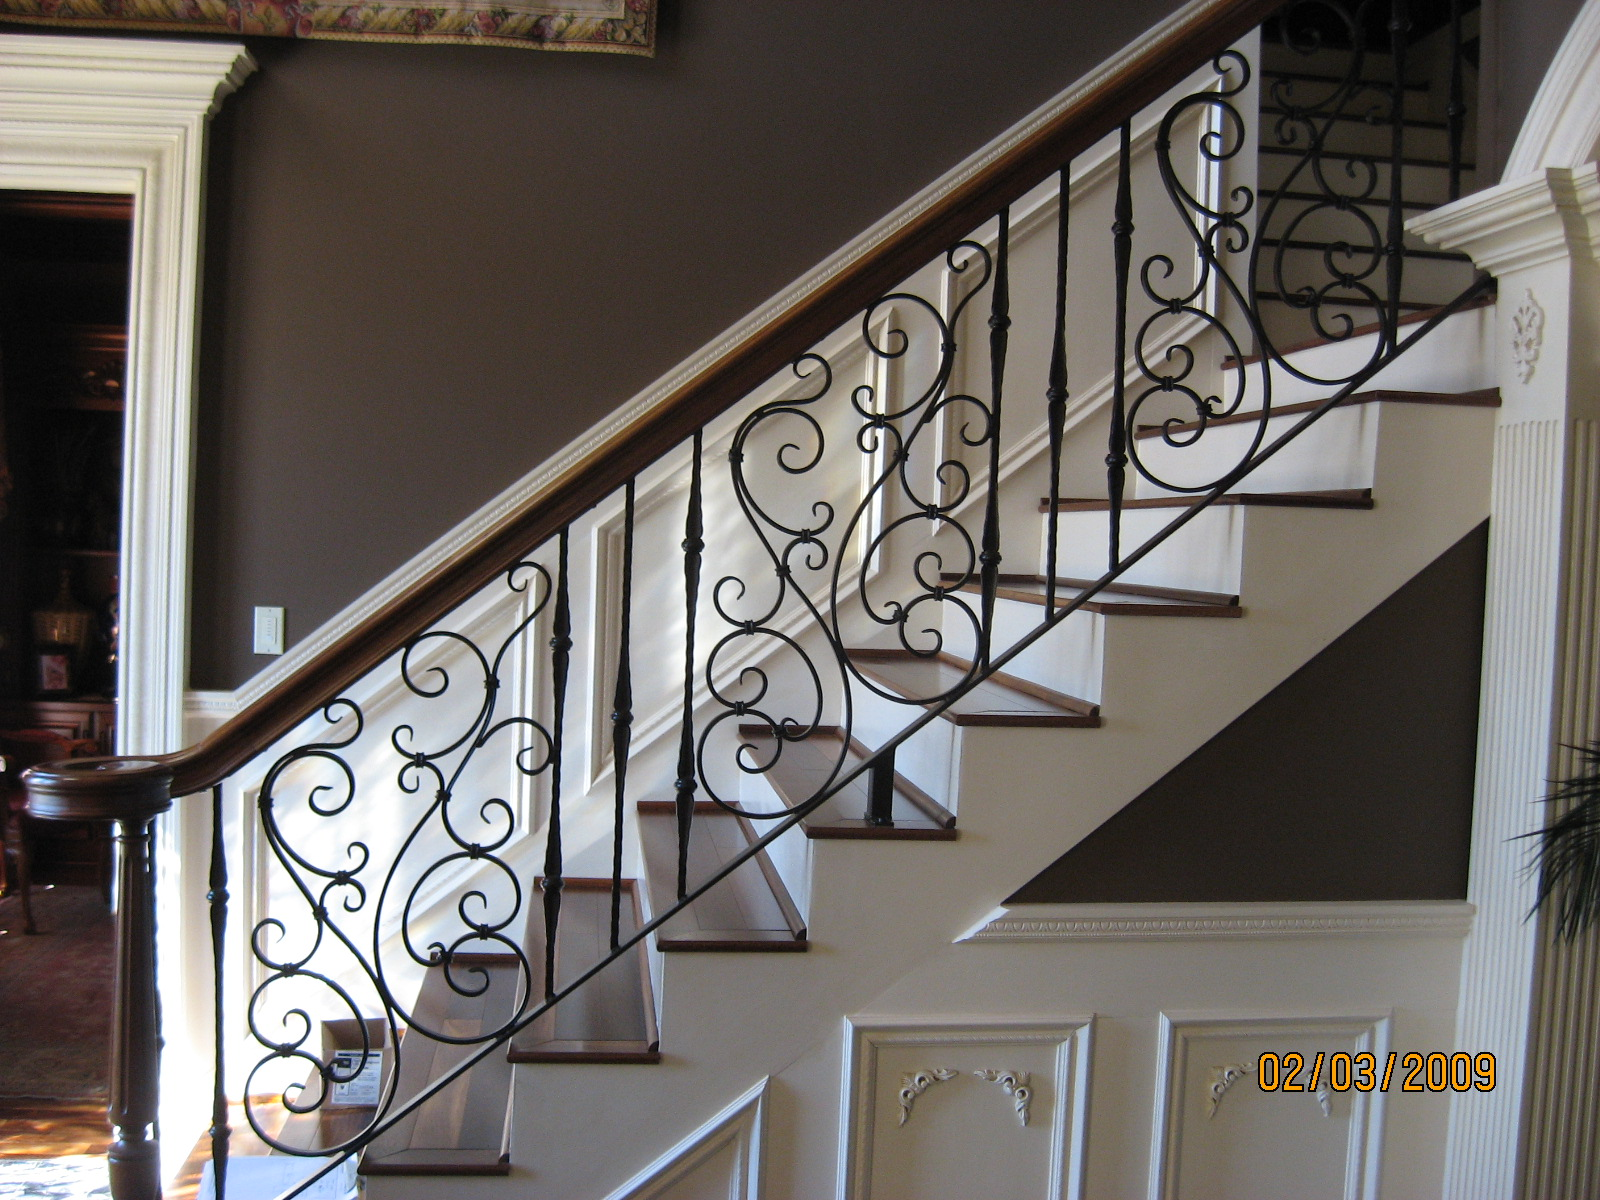 Inspirational-Wrought-Iron-Railings-Indoor-83-For-House-Decoration-with-Wrought-Iron-Railings-Indoor